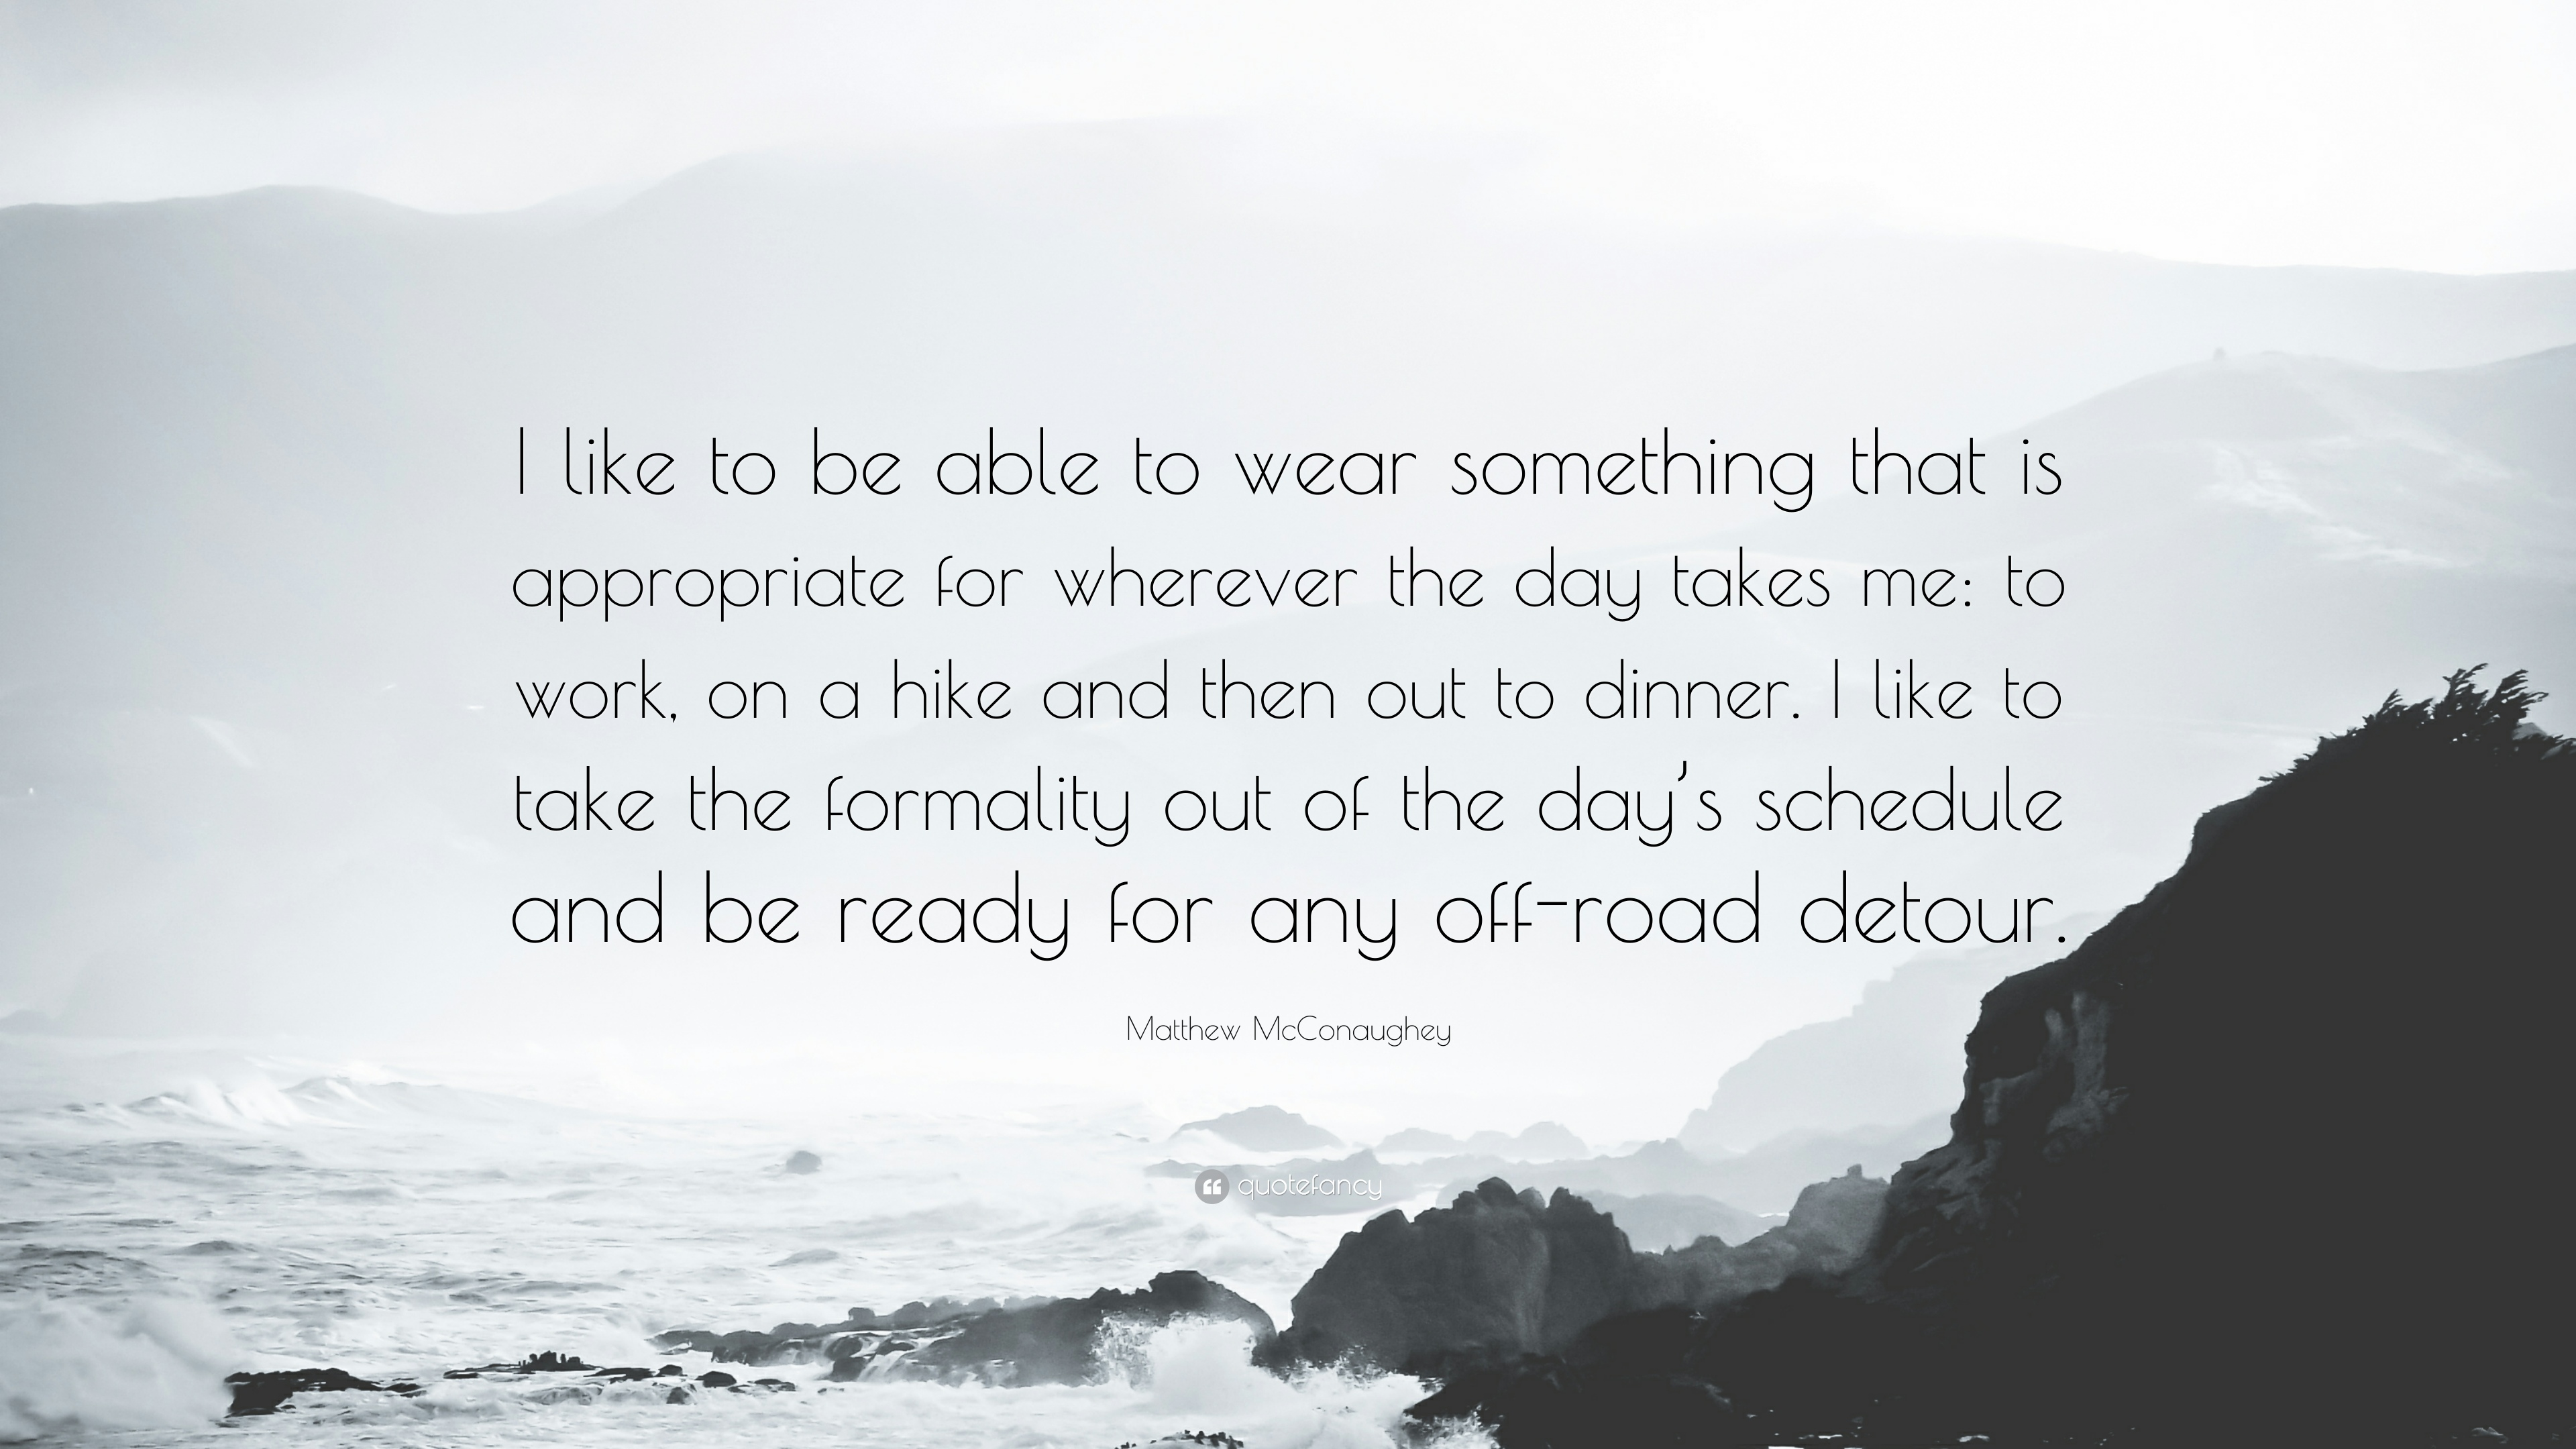 matthew mcconaughey quote i like to be able to wear something matthew mcconaughey quote i like to be able to wear something that is appropriate